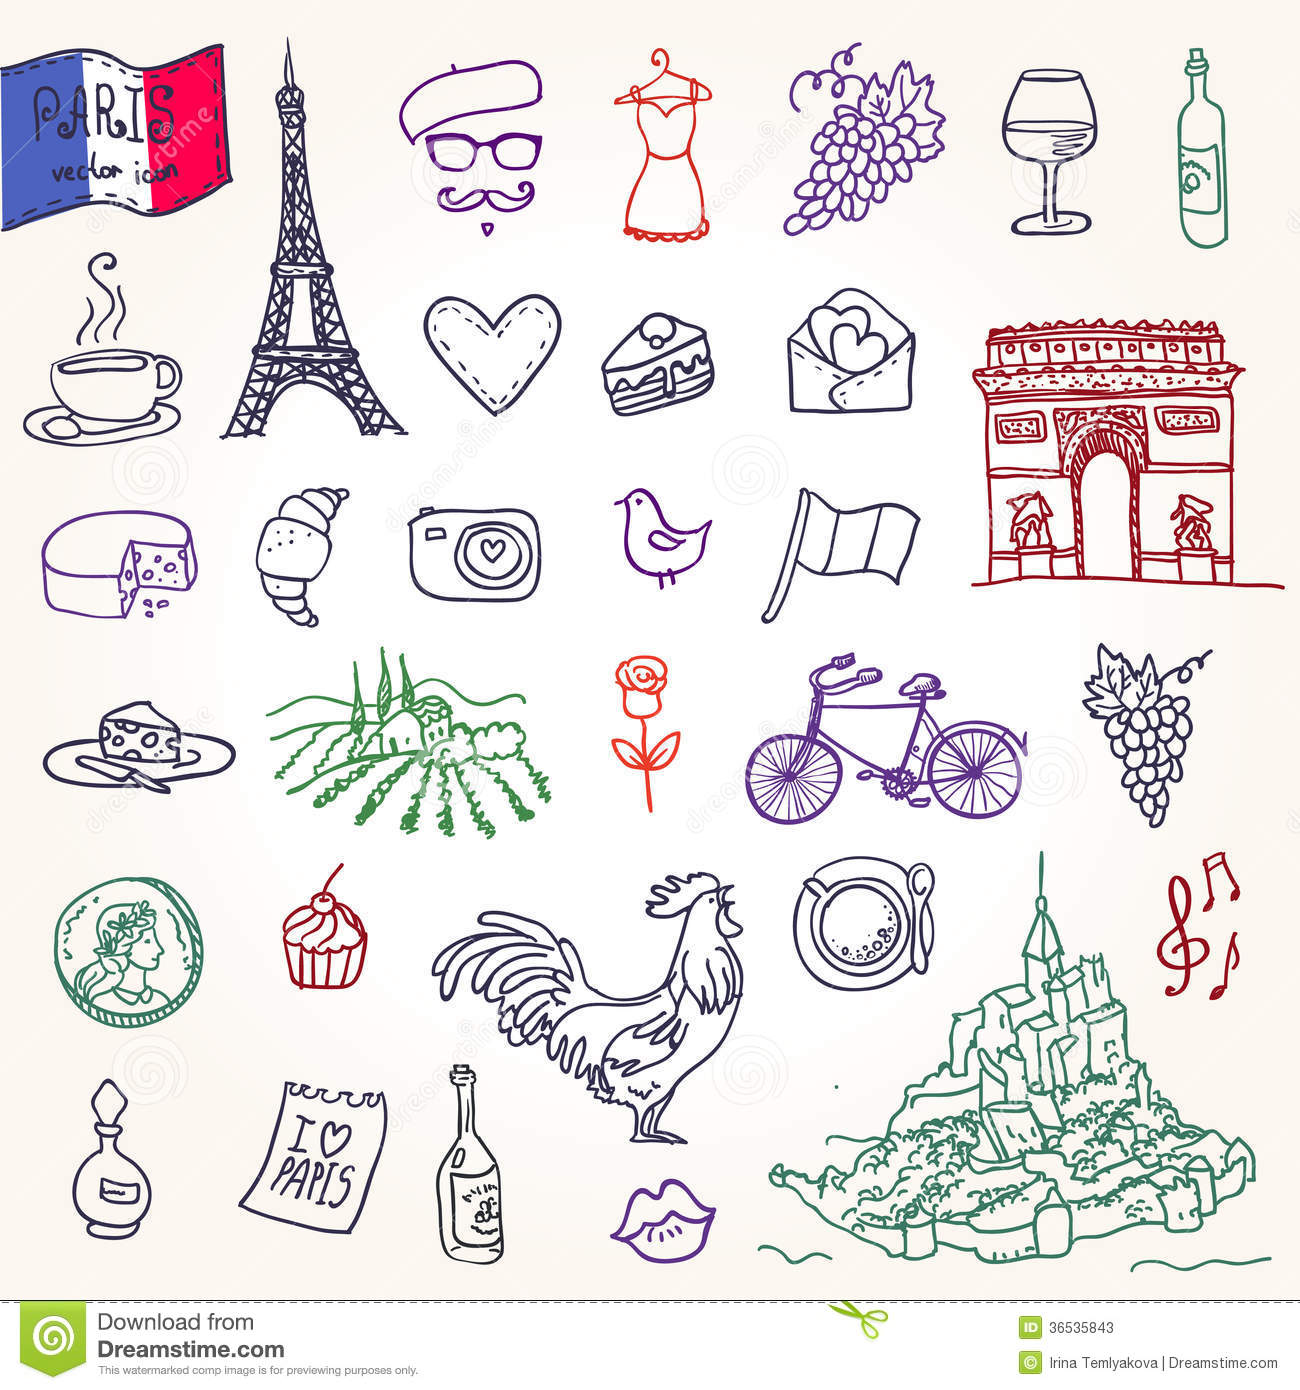 Symbols Of France As Funky Doodles Stock Photos - Image: 36535843